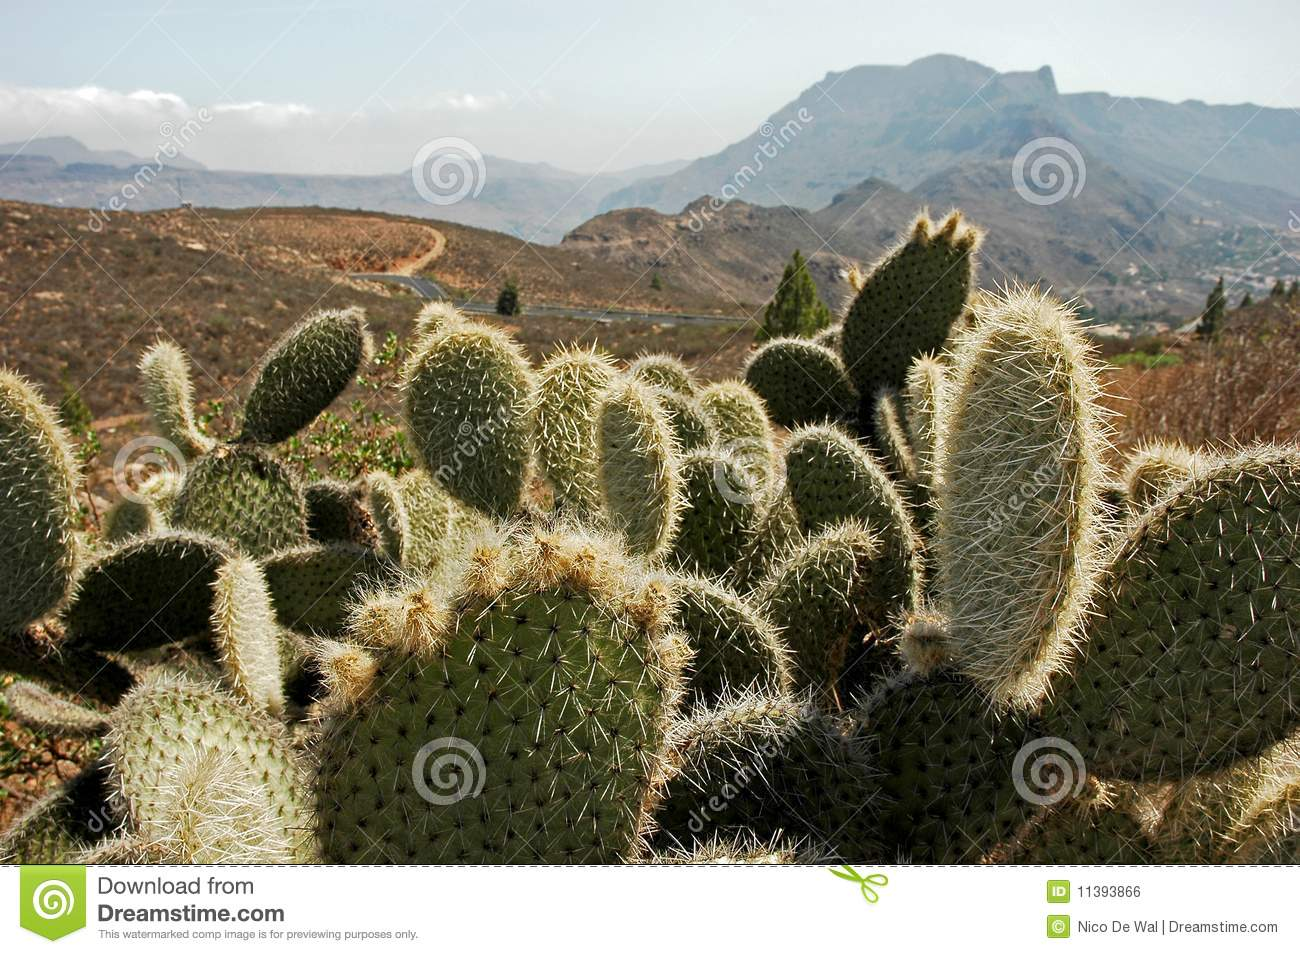 Multiple cacti cactus plants in desert mountain landscape HD Wide Wallpaper for Widescreen